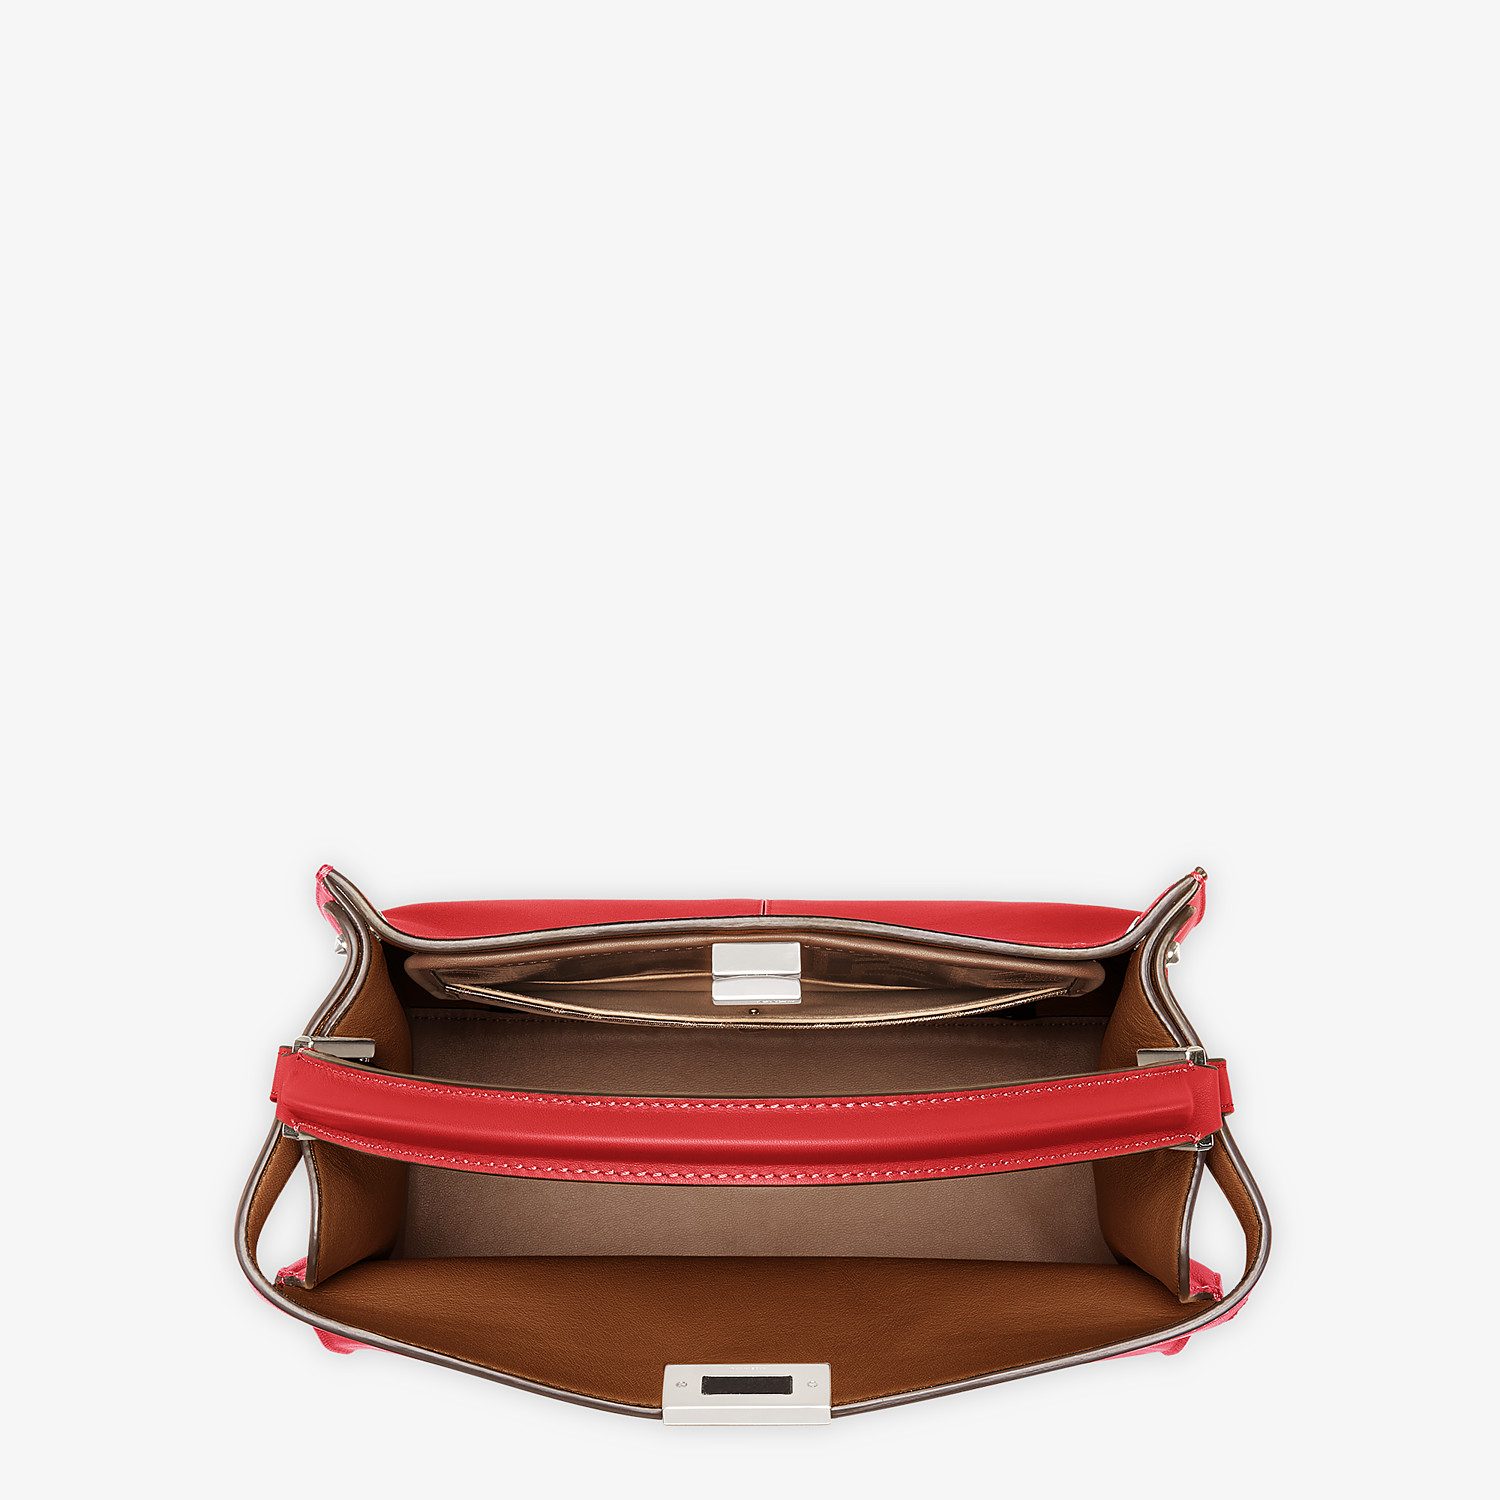 FENDI PEEKABOO X-LITE MEDIUM - Tasche aus Leder in Rot - view 6 detail